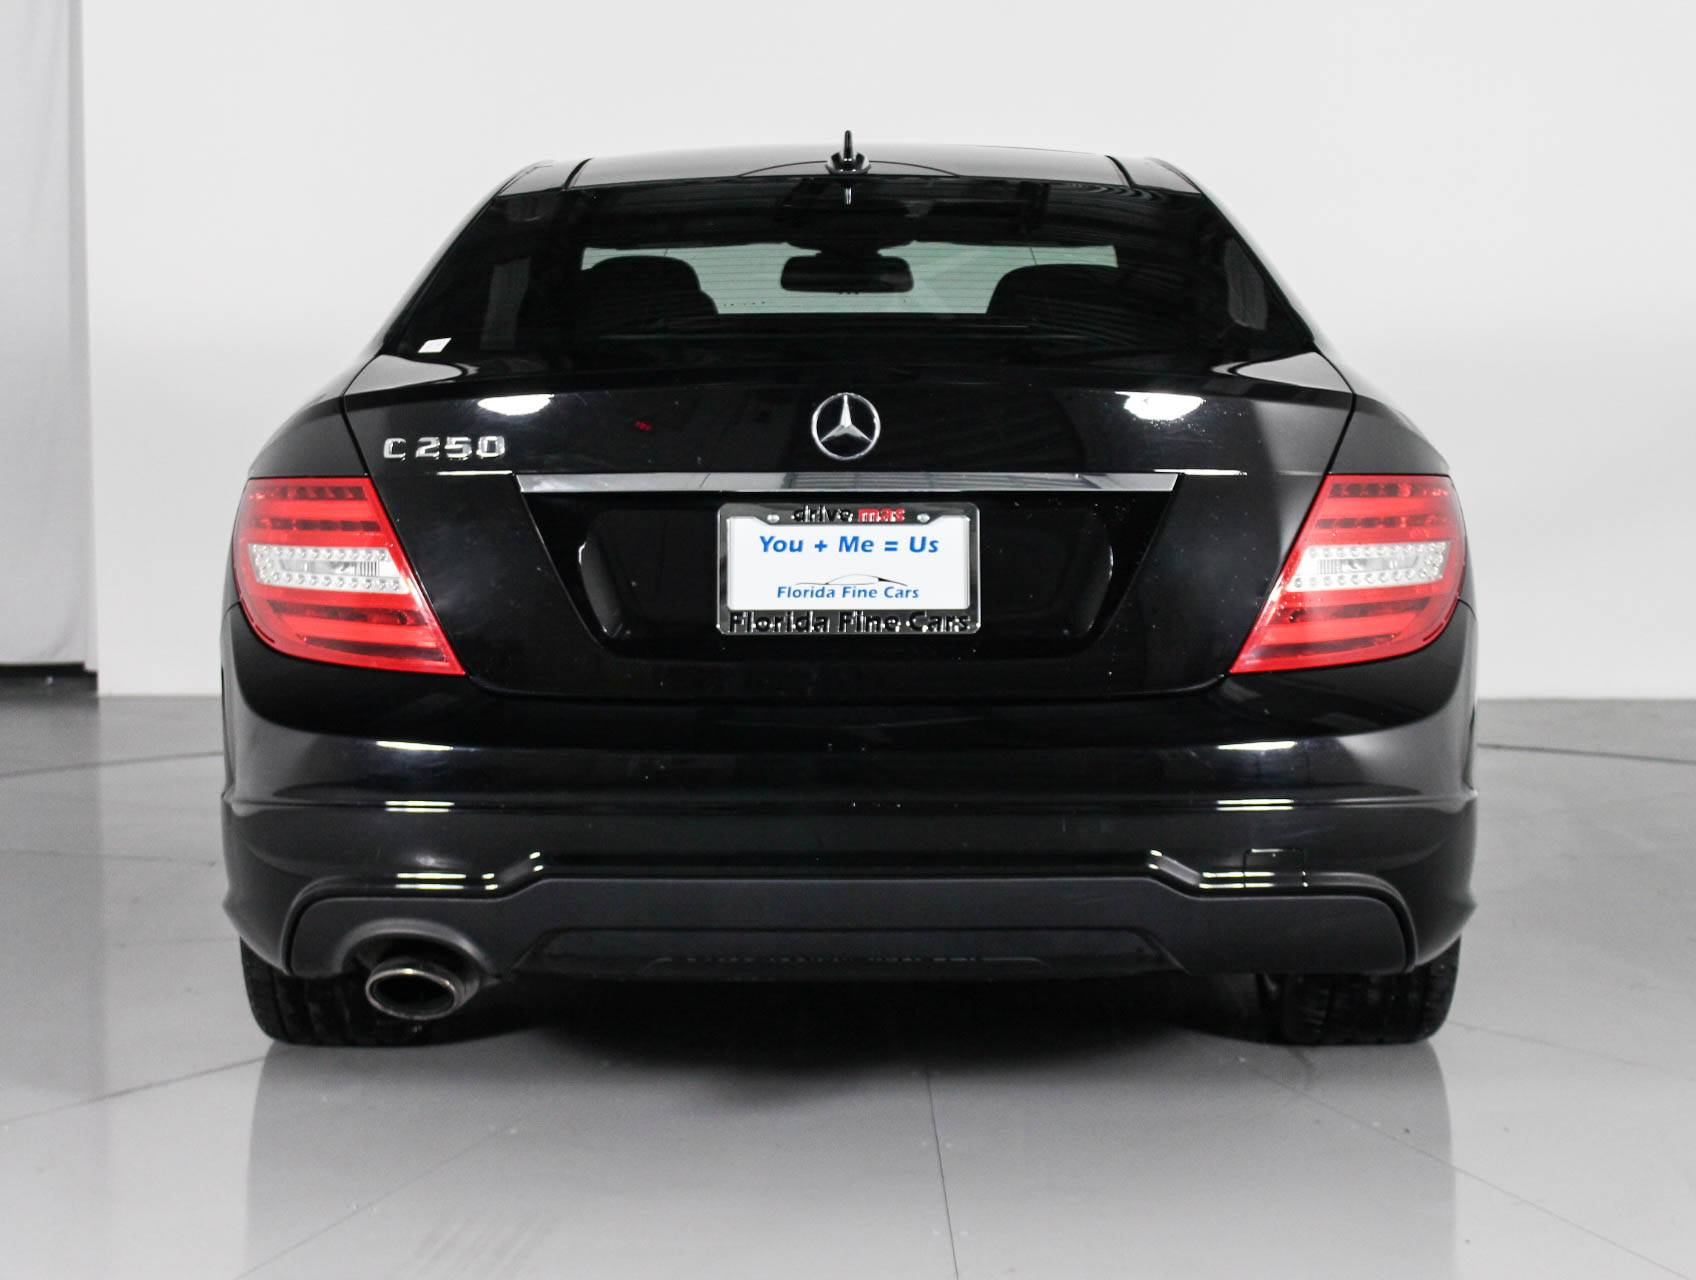 Preowned 2015 Mercedes Benz C Class C250 Coupe Black 101966 Florida Fine Cars In Margate